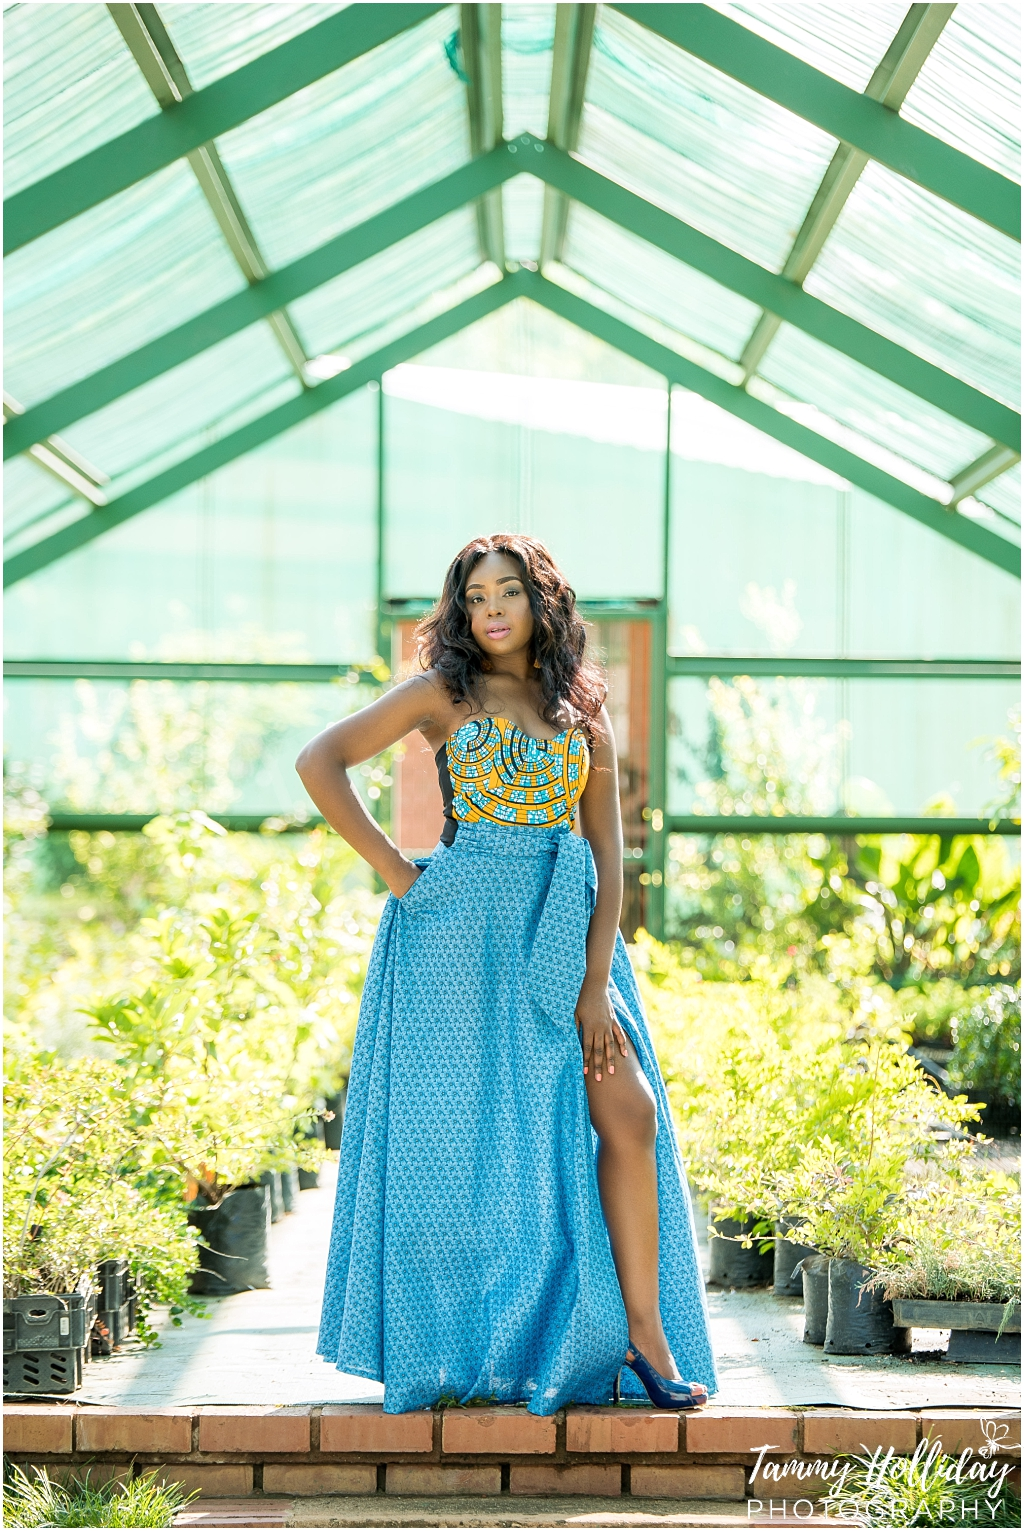 striking a pose in a greenhouse full of greenery wearing blue dress with slit portfolio shoot